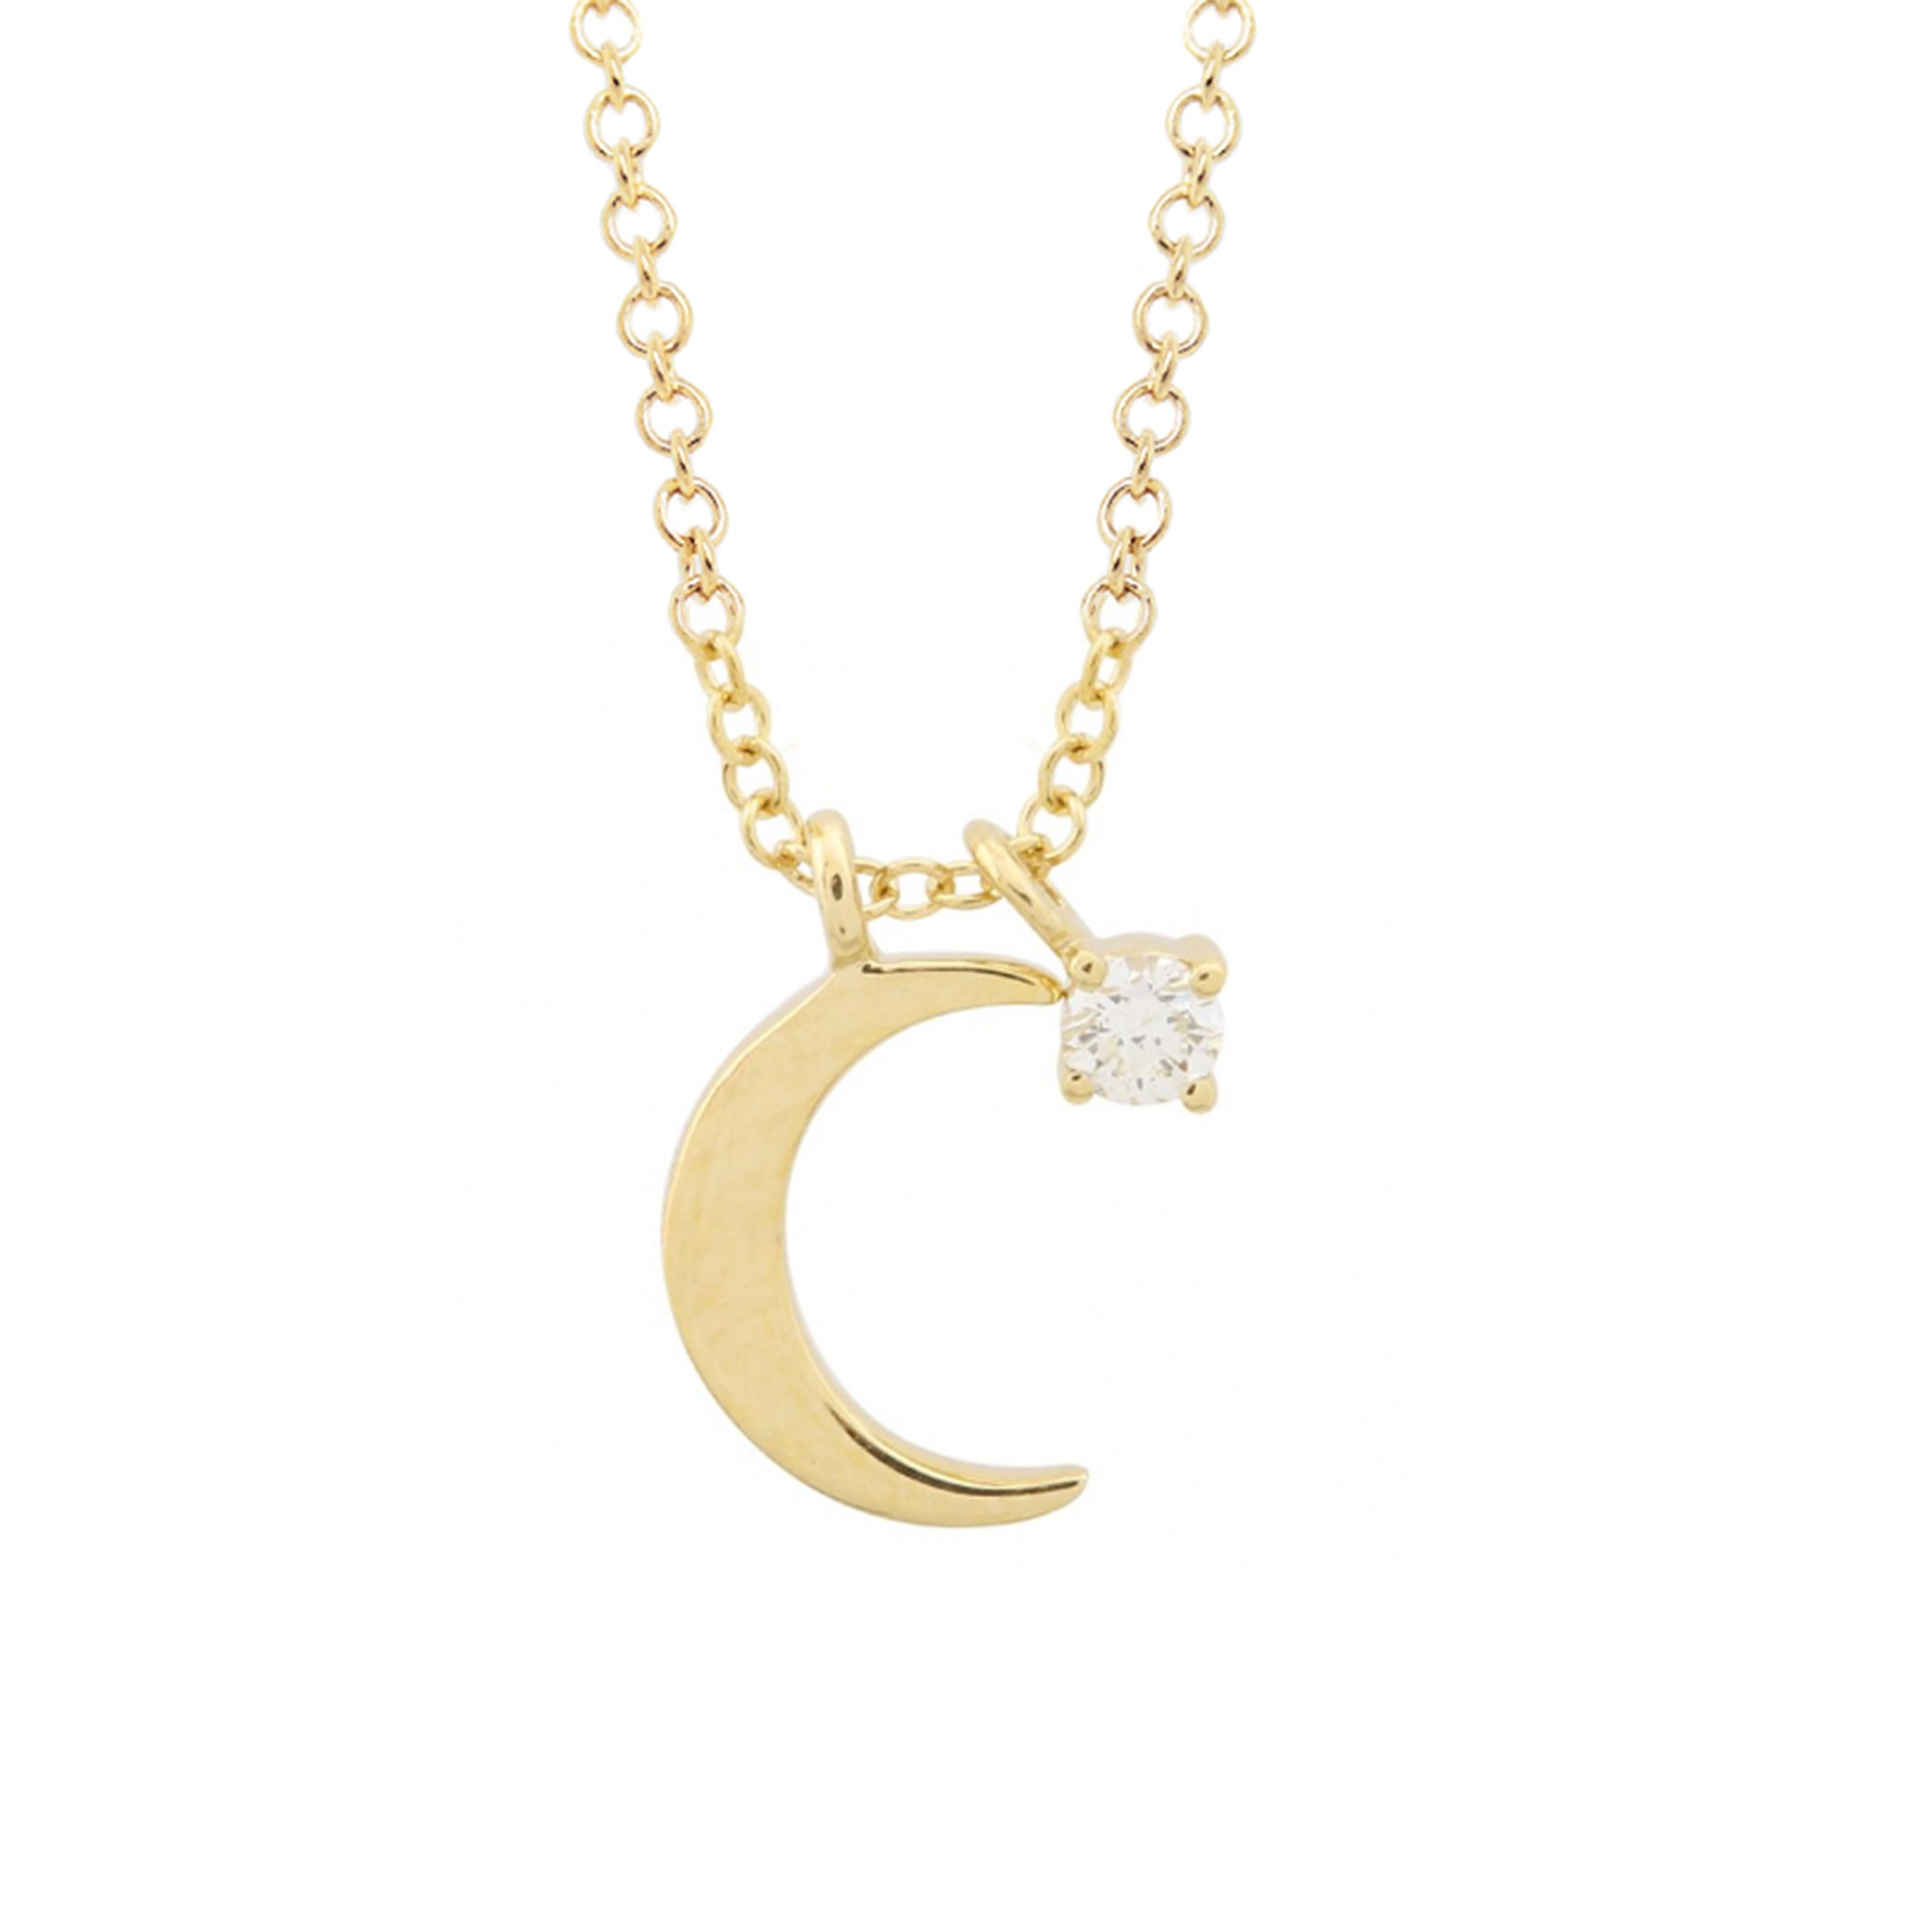 14K PLAIN CRESCENT MOON AND DIAMOND CHARM NECKLACE